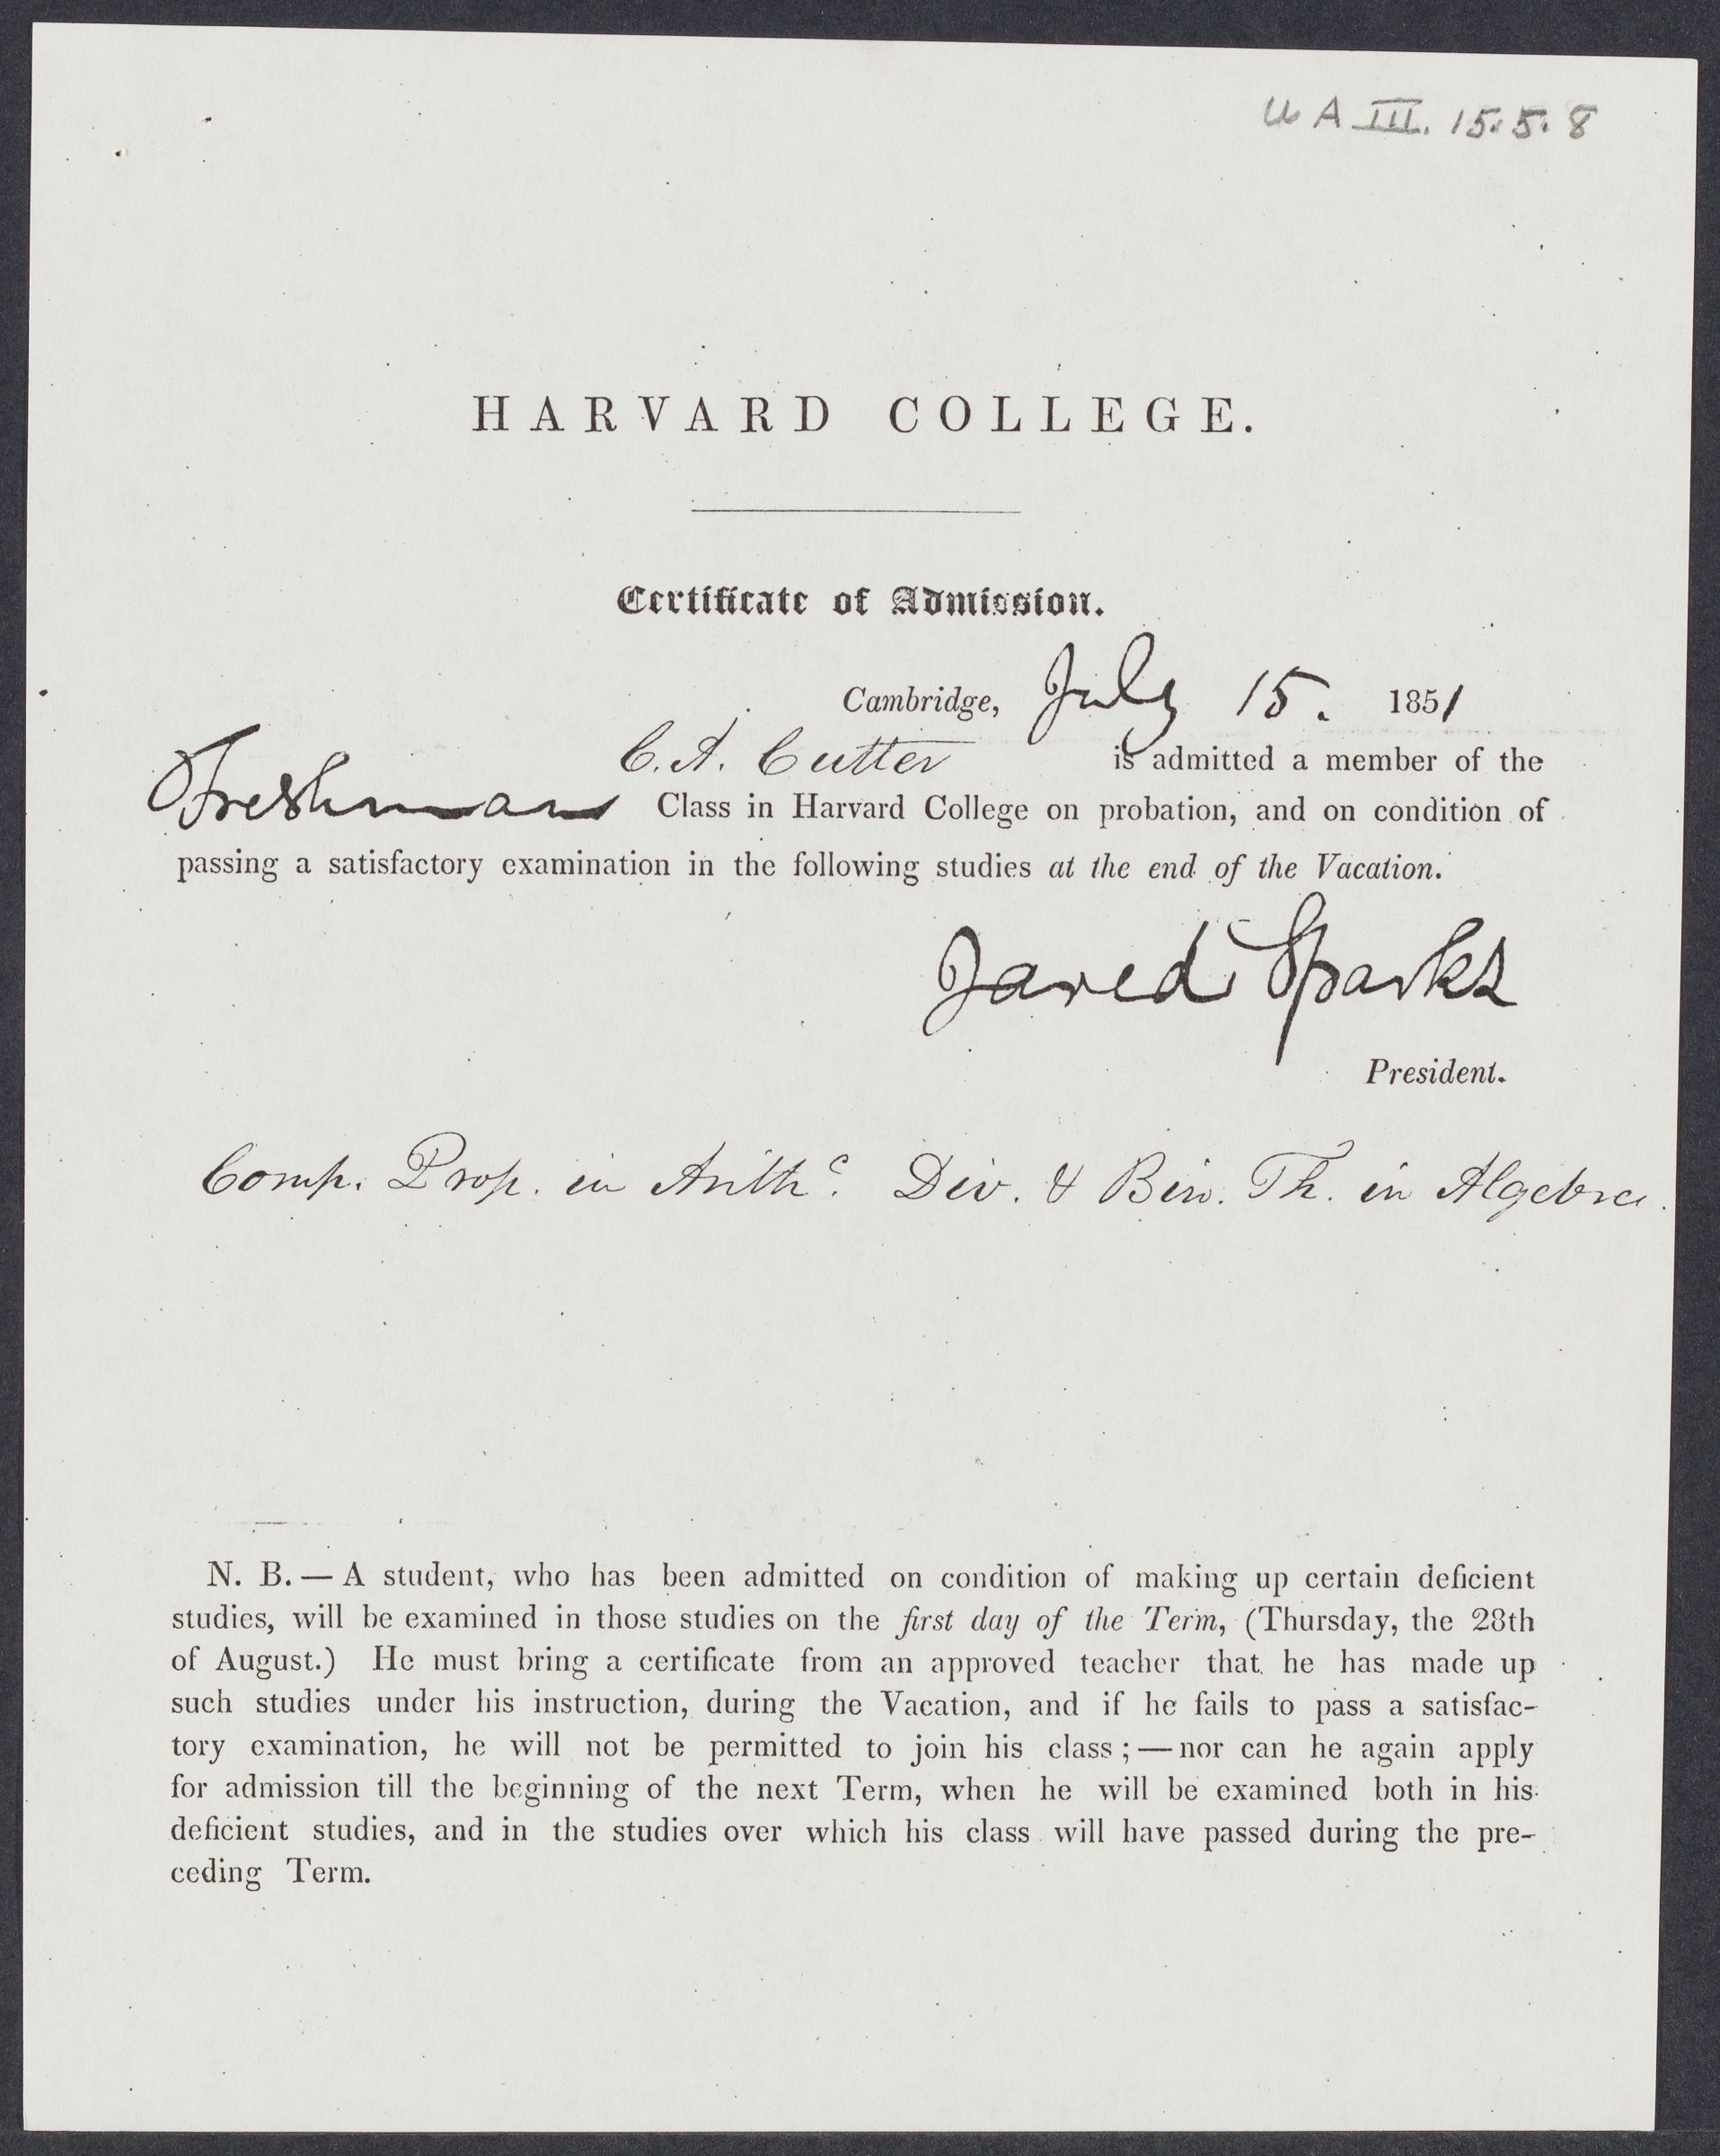 [Certificate of admission of Charles Ammi Cutter], 1851 July 15